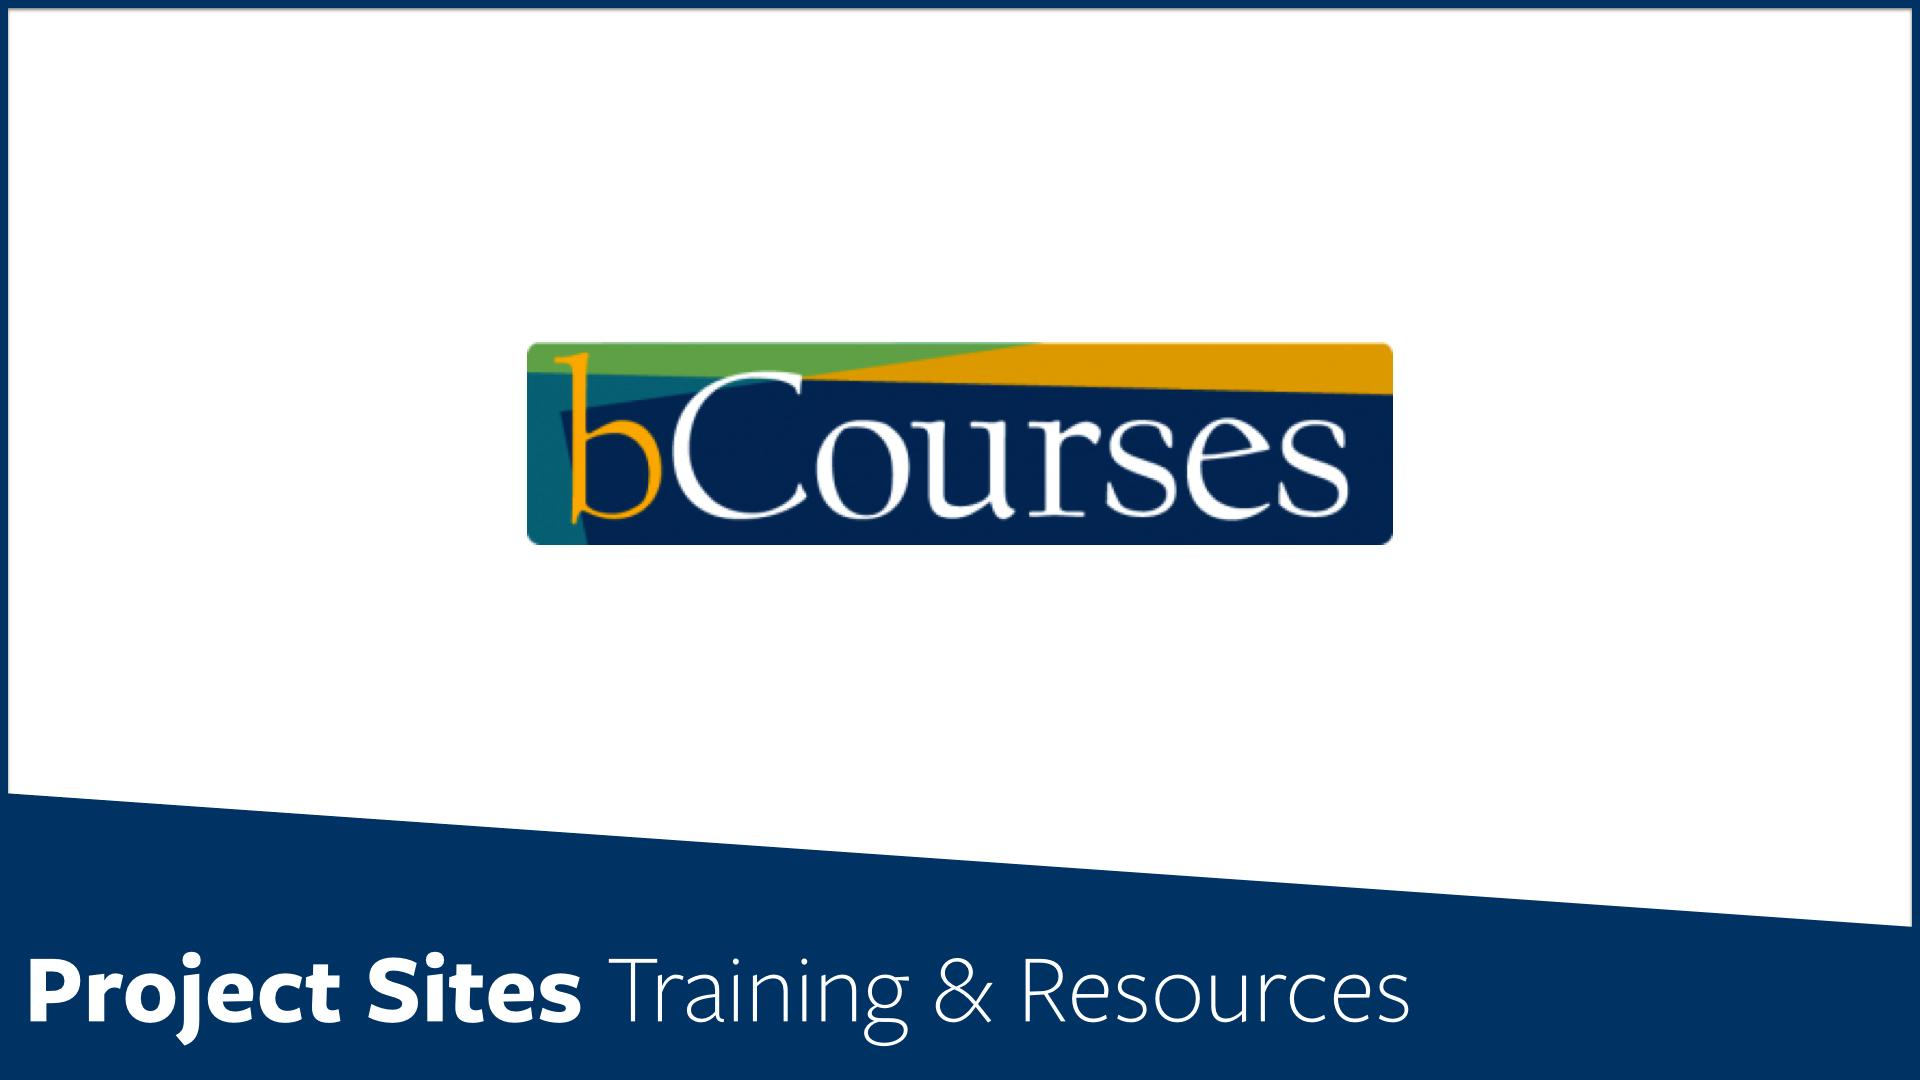 bCourses Training Information